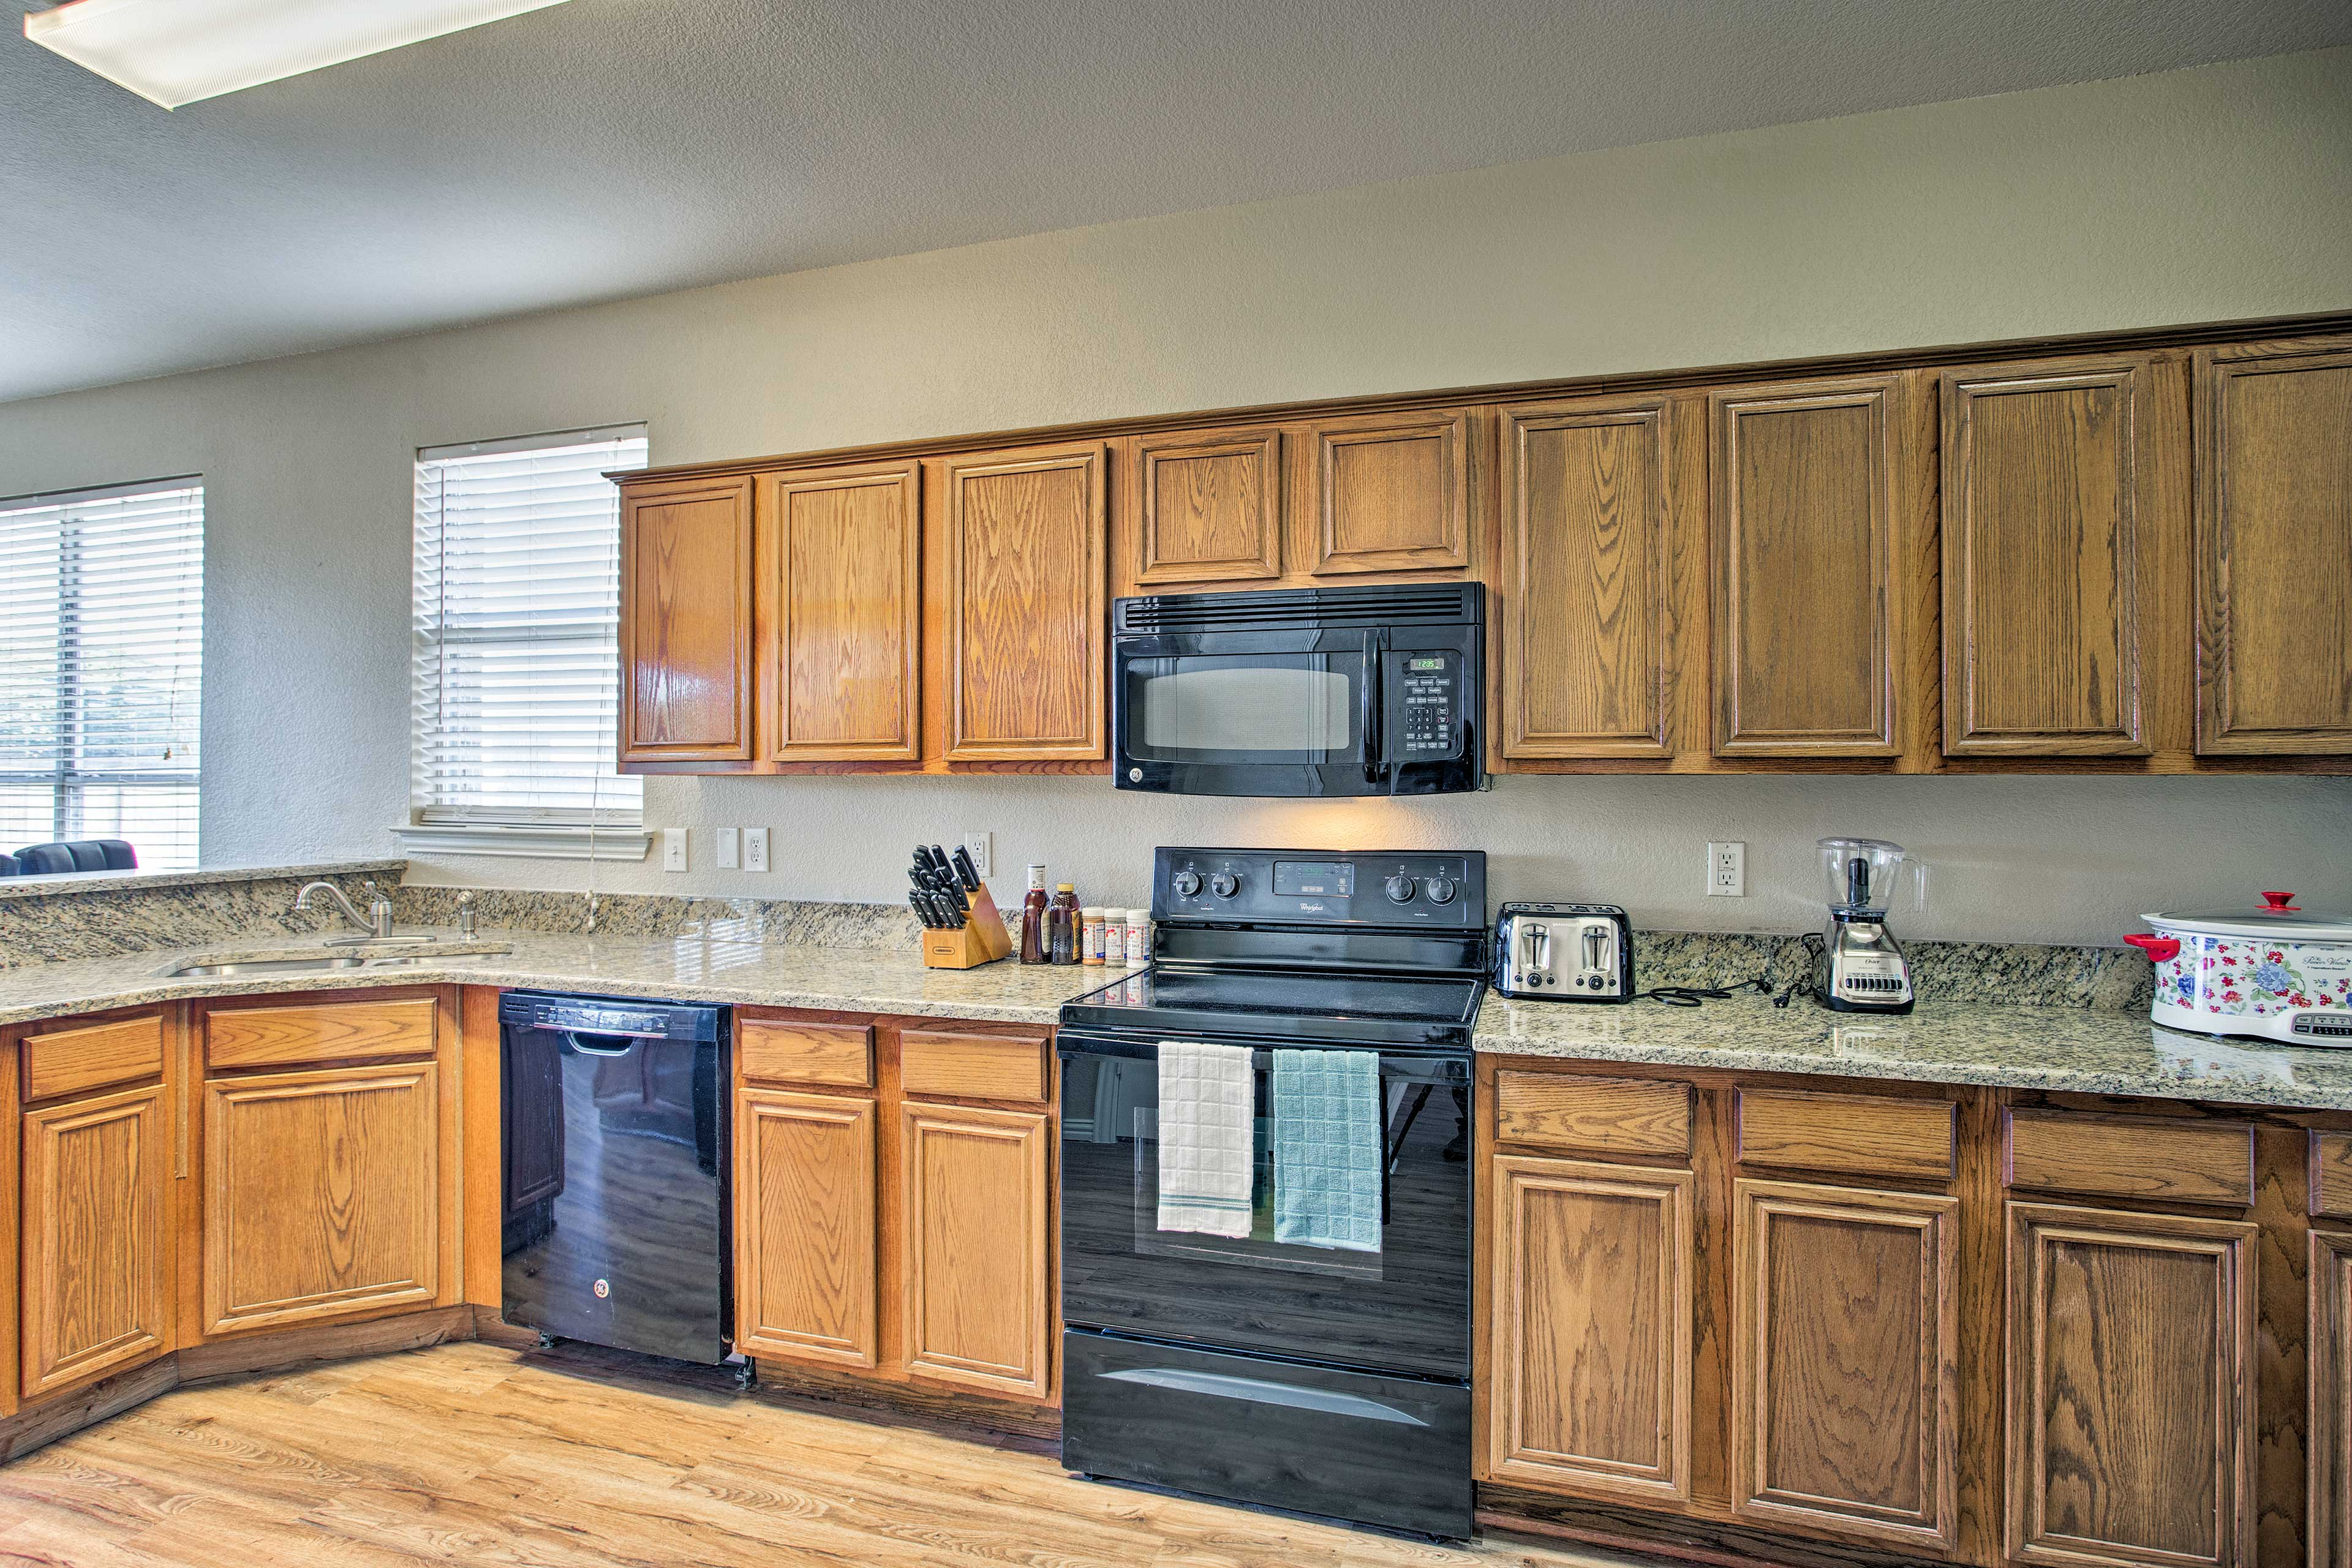 The kitchen is fully equipped with all the appliances you need.